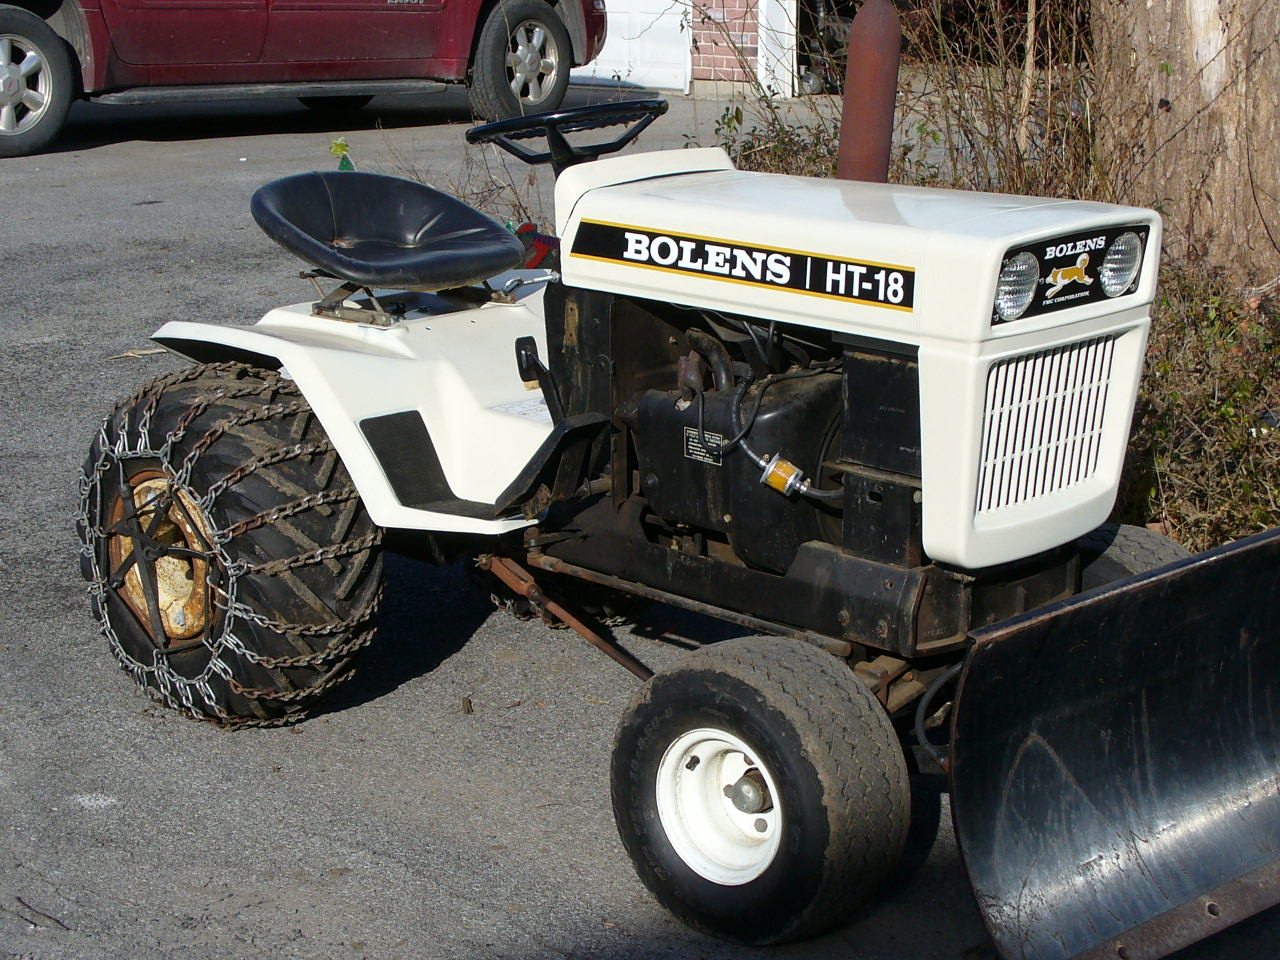 Bolens Ht 20 Lawn Tractor Tractors 1256 Husky Wiring Diagram What Is It The Friendliest Forum And